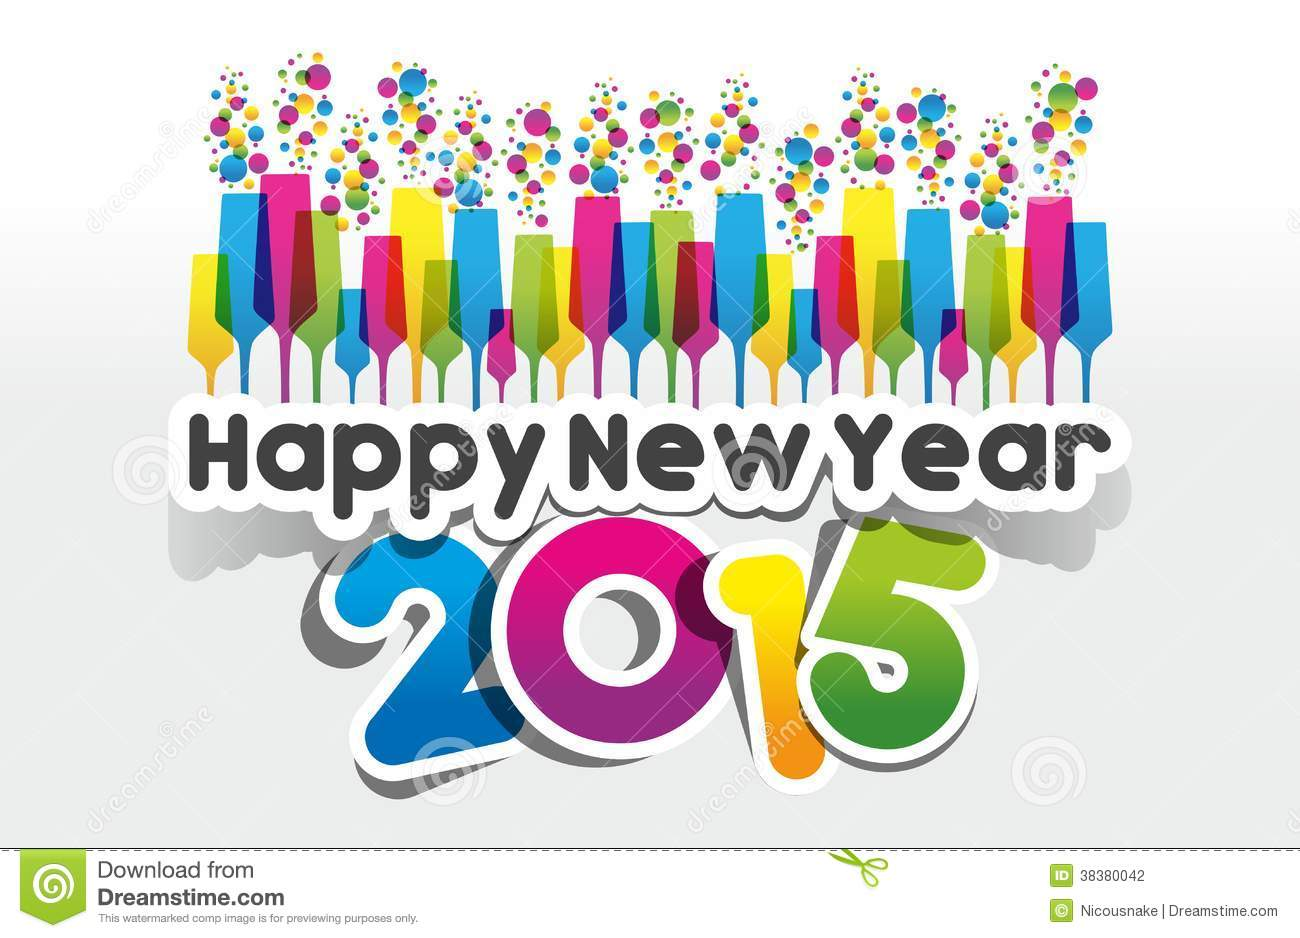 Happy New Year Greeting Clipart.